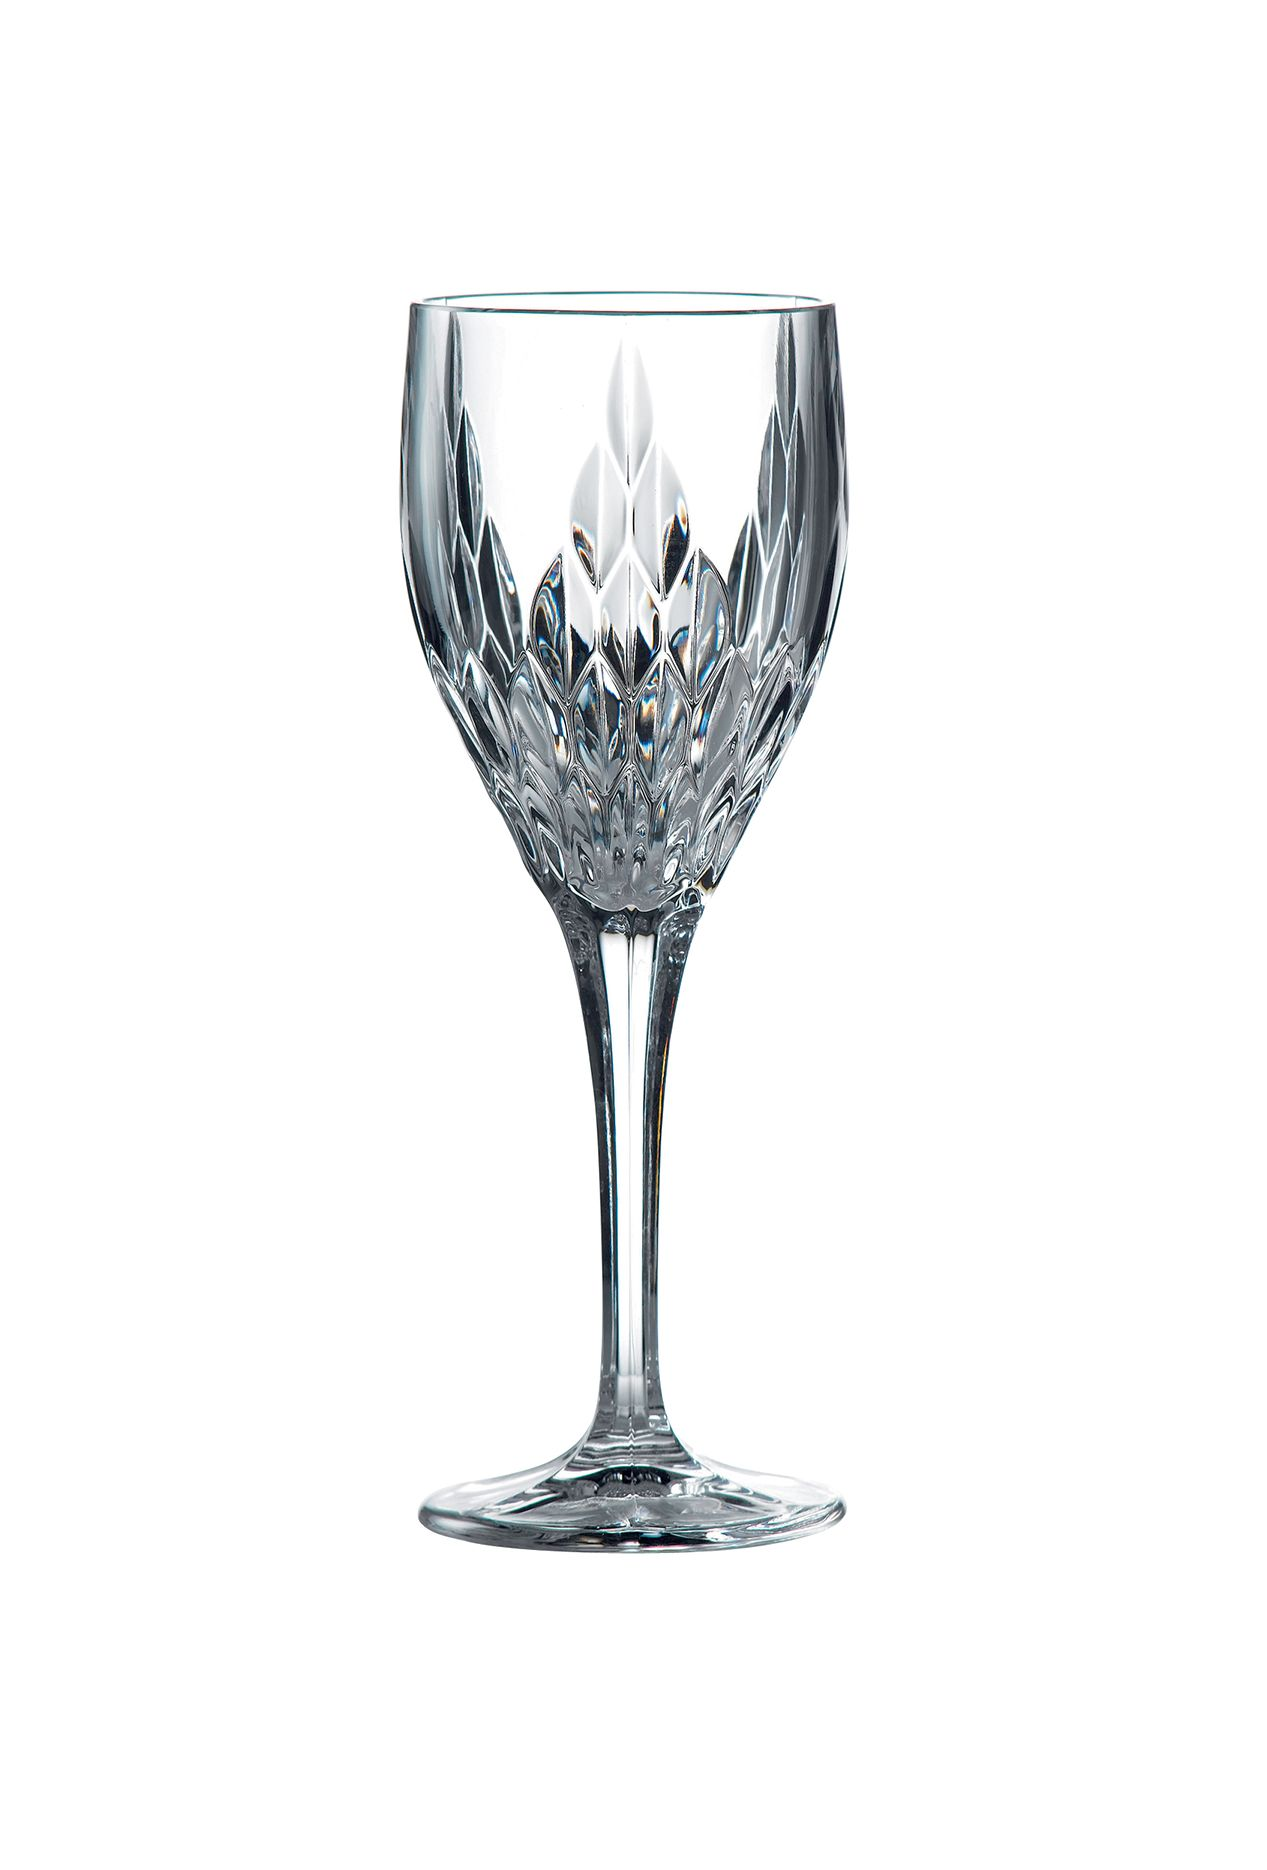 Retro crystal wine glasses - box of 6